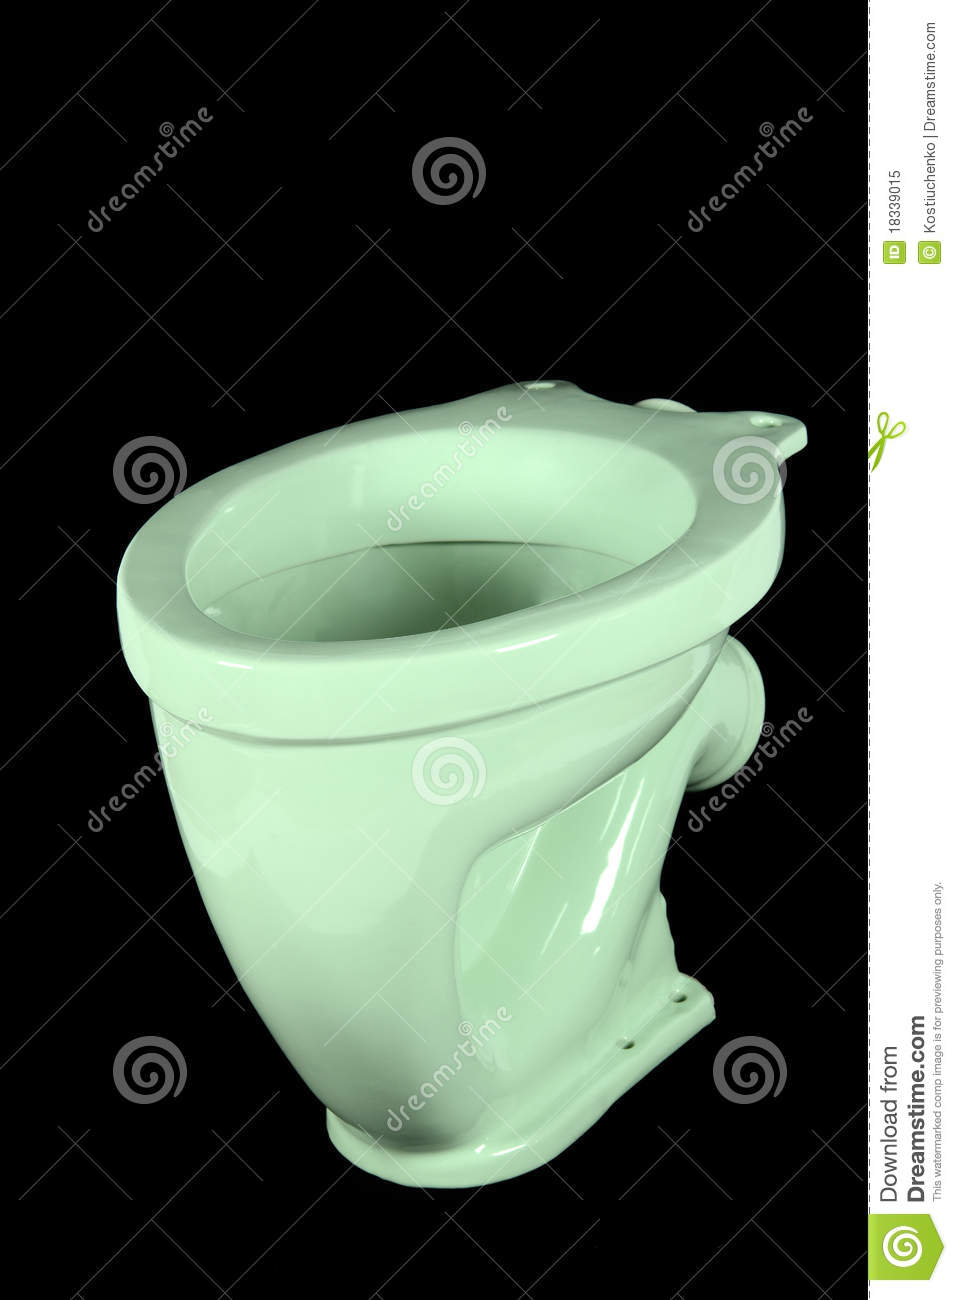 Design Toilet The Light Green Toilet Bowl Royalty Free Stock Photo